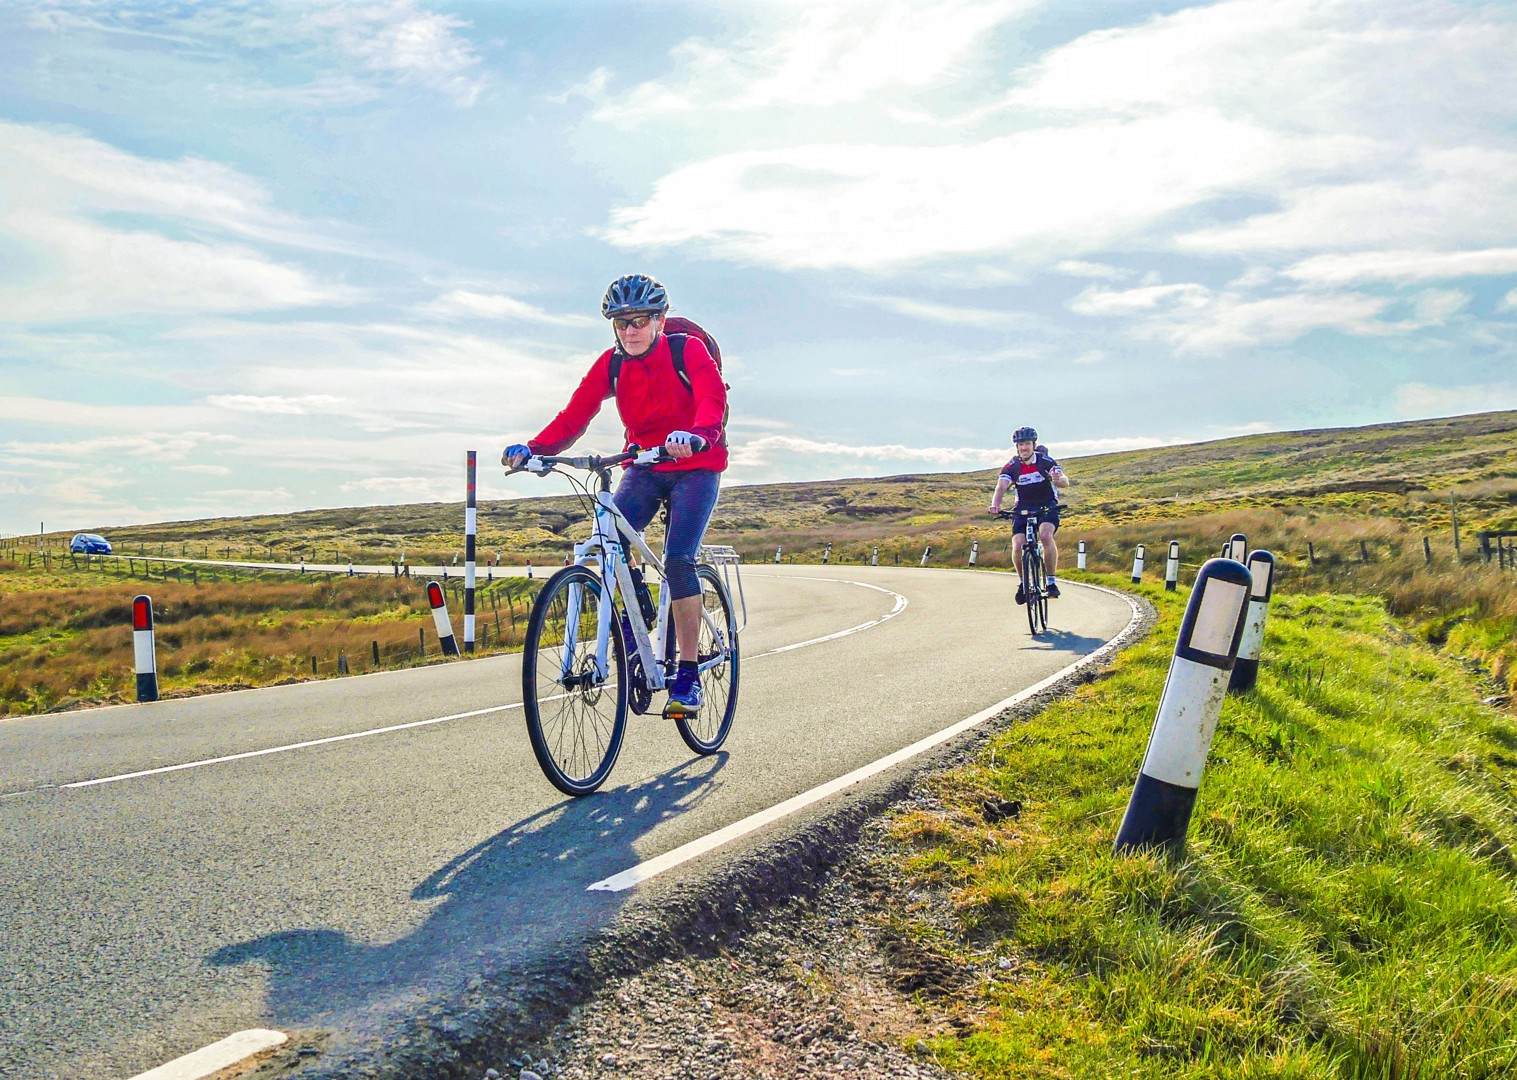 uk-cycle-fun-sunny-group-holiday-supported-easy.jpg - UK - C2C - Coast to Coast - Supported Leisure Cycling Holiday - Family Cycling